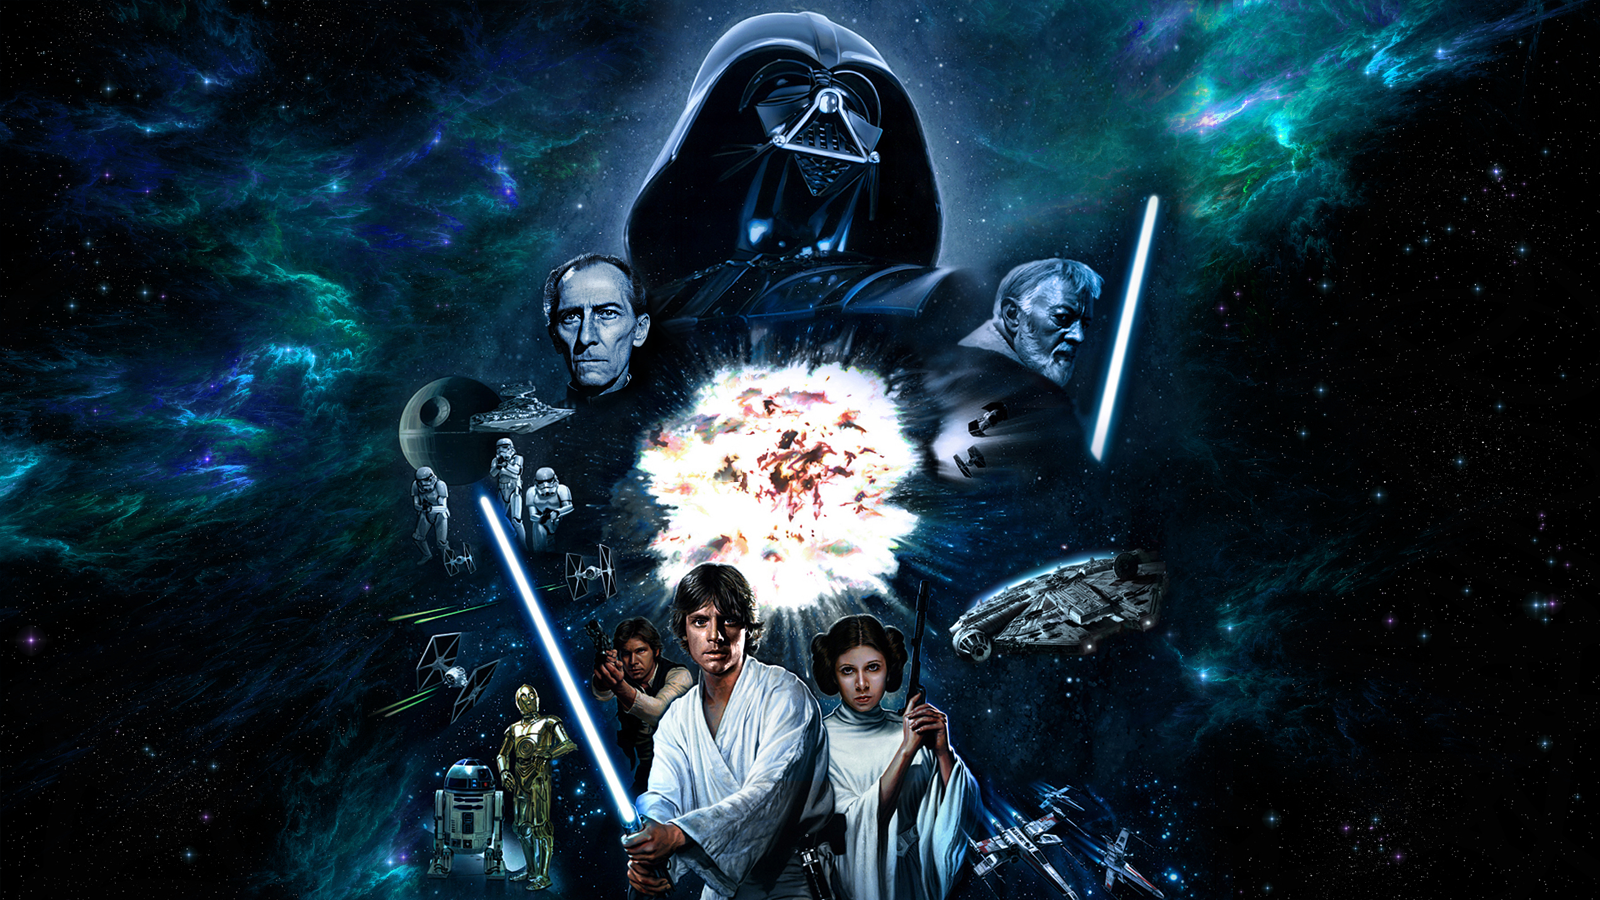 Star Wars A New Hope Wallpaper Jerry Vanderstelt By Spirit Of